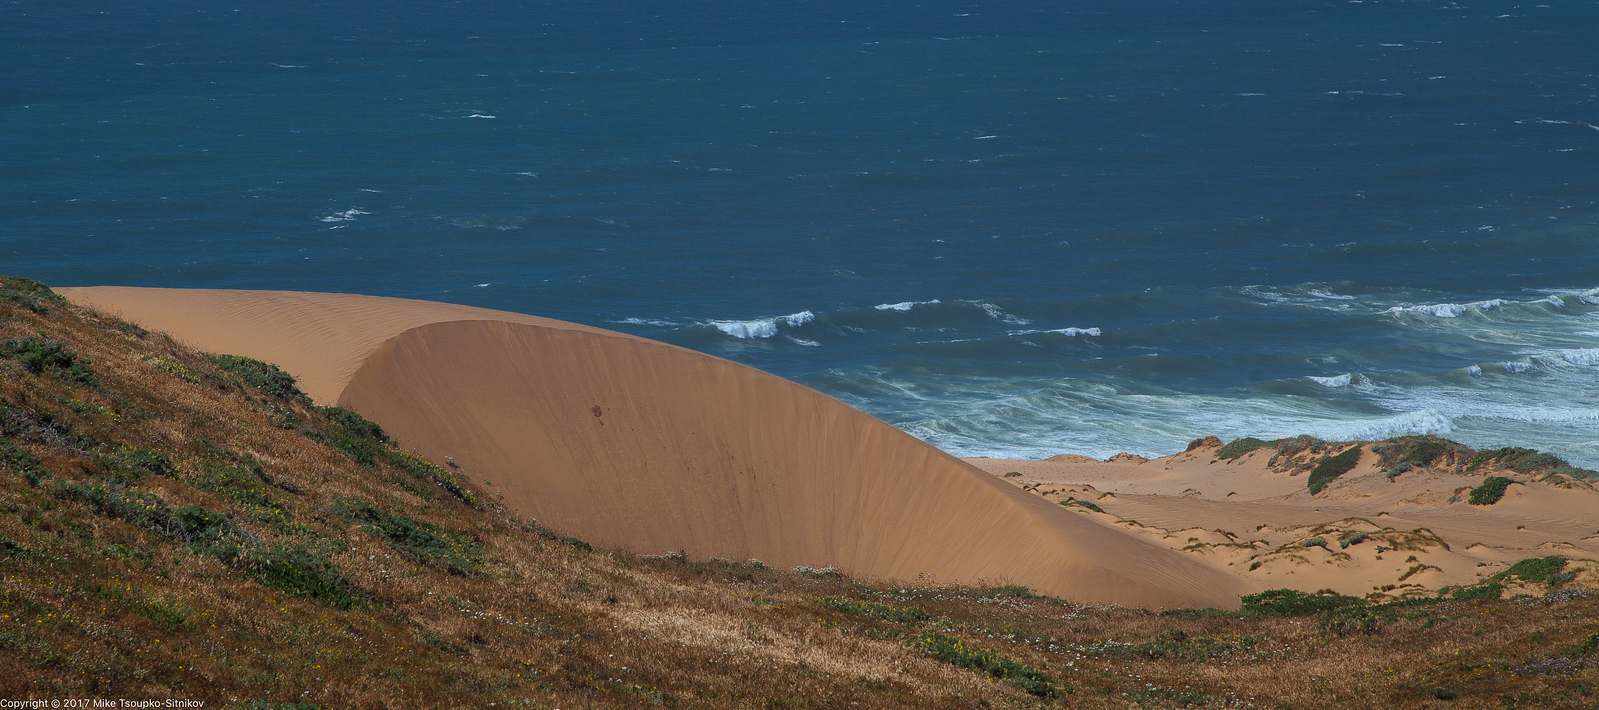 Dunes at Point Reyes Lighthouse